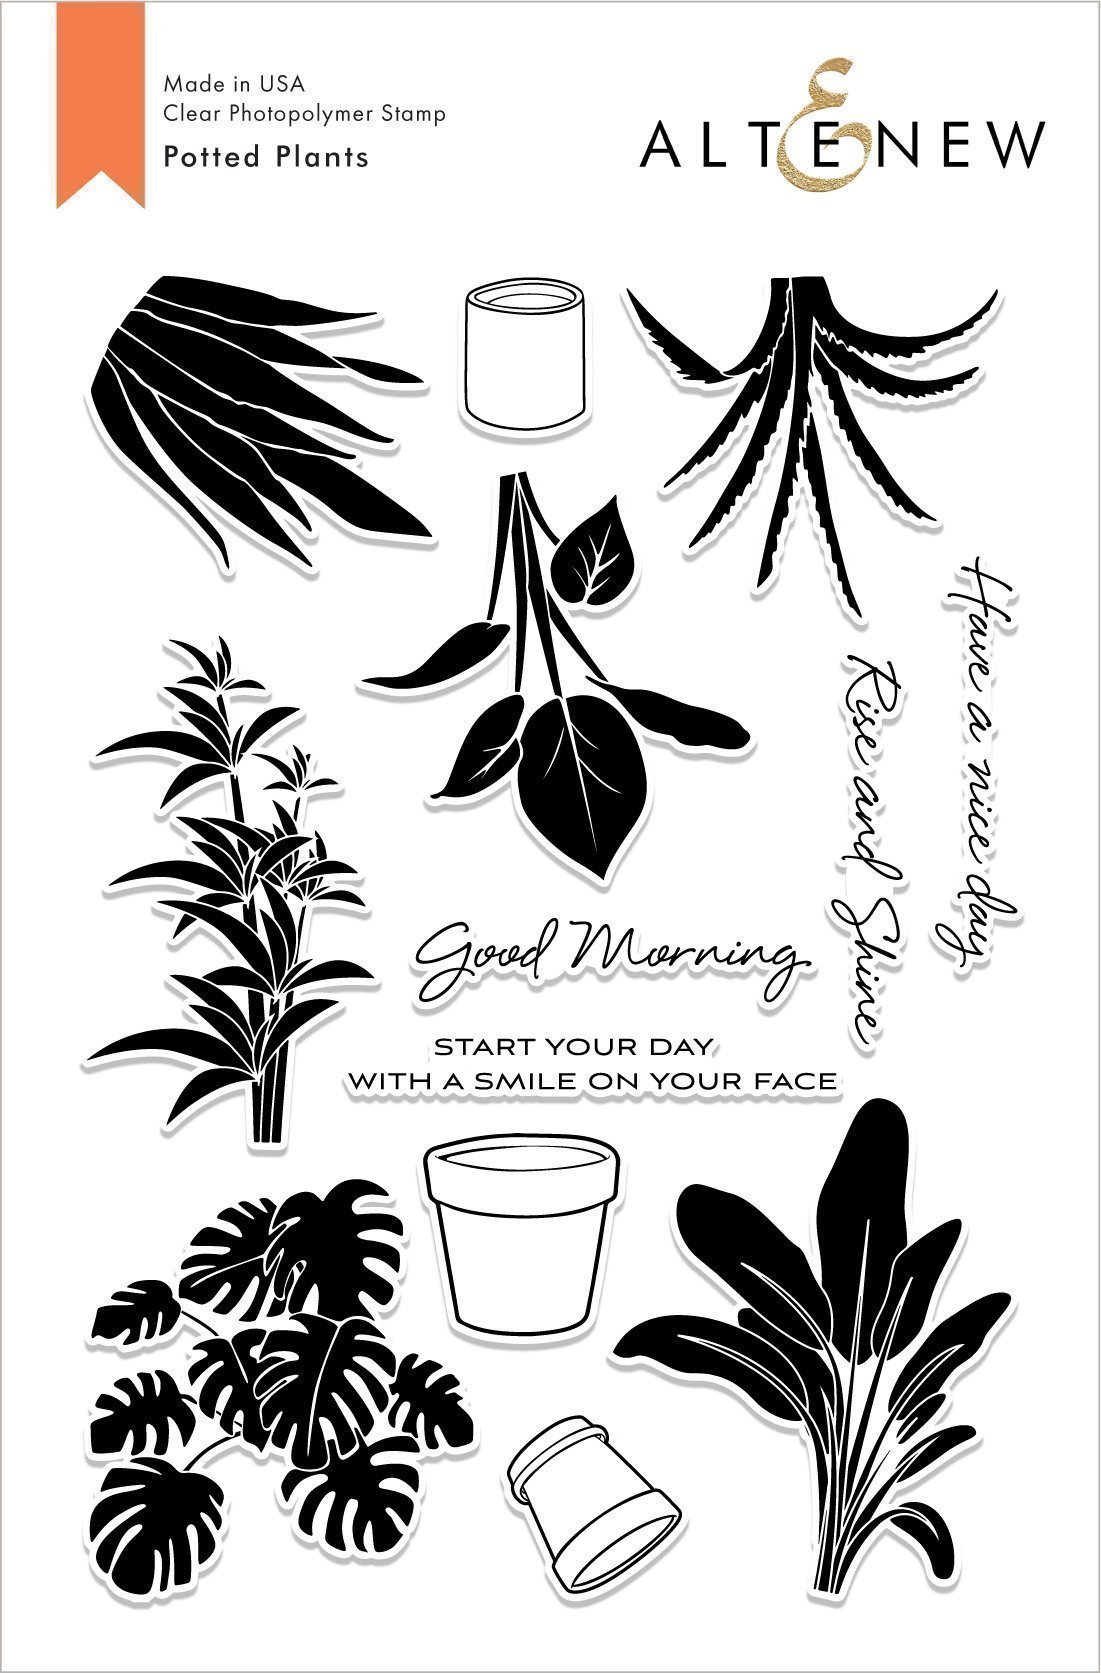 *NEW* - Altenew - Potted Plants Stamp Set